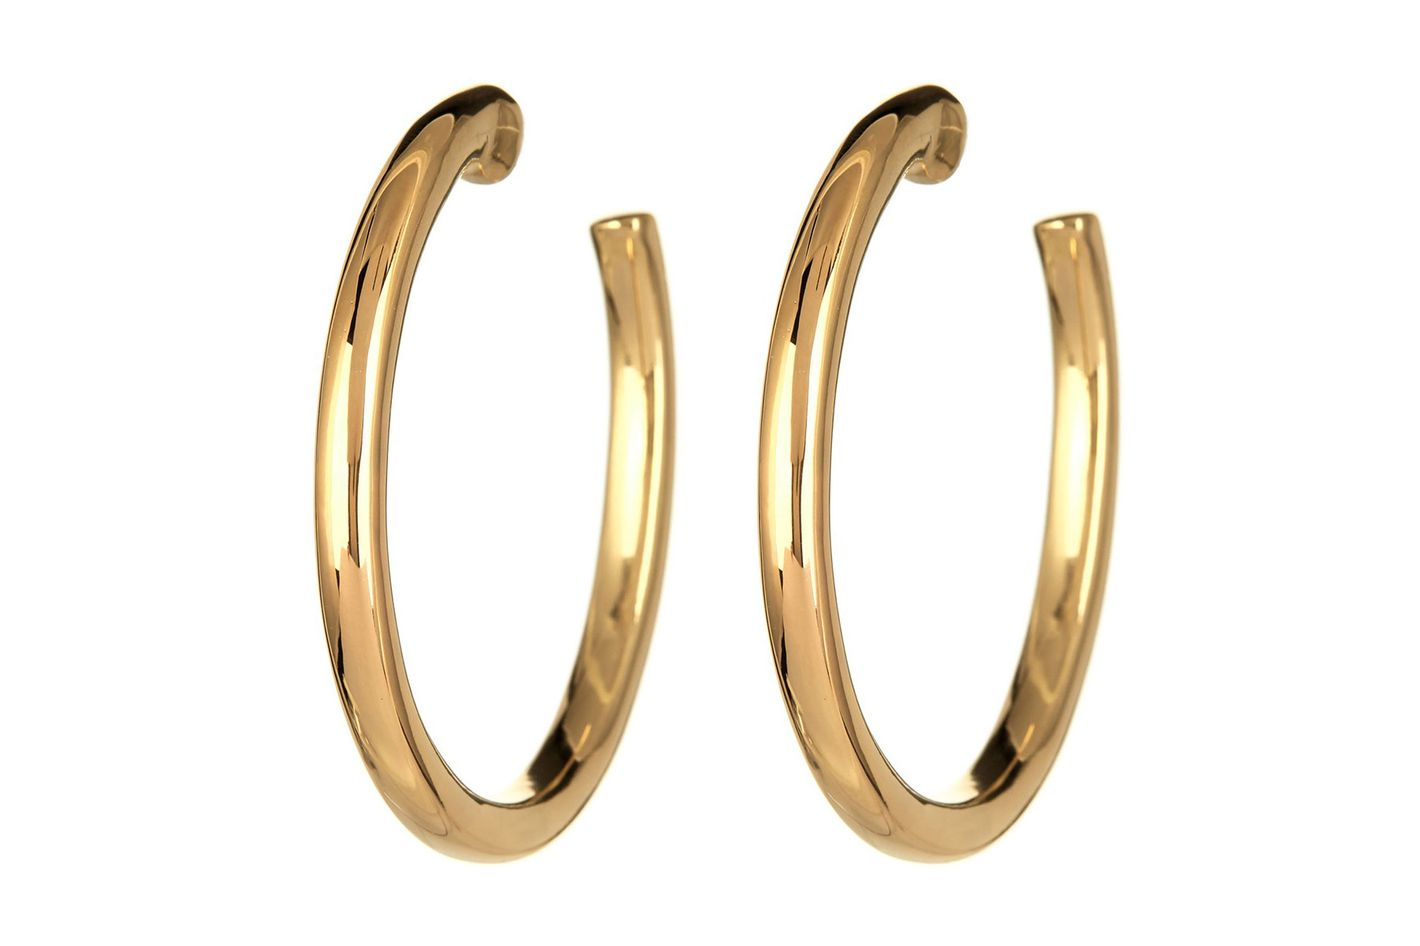 rings gold item wholesale jewellery ear lady on men from hoop in golden earrings shipping imitation free jewelry ring accessories